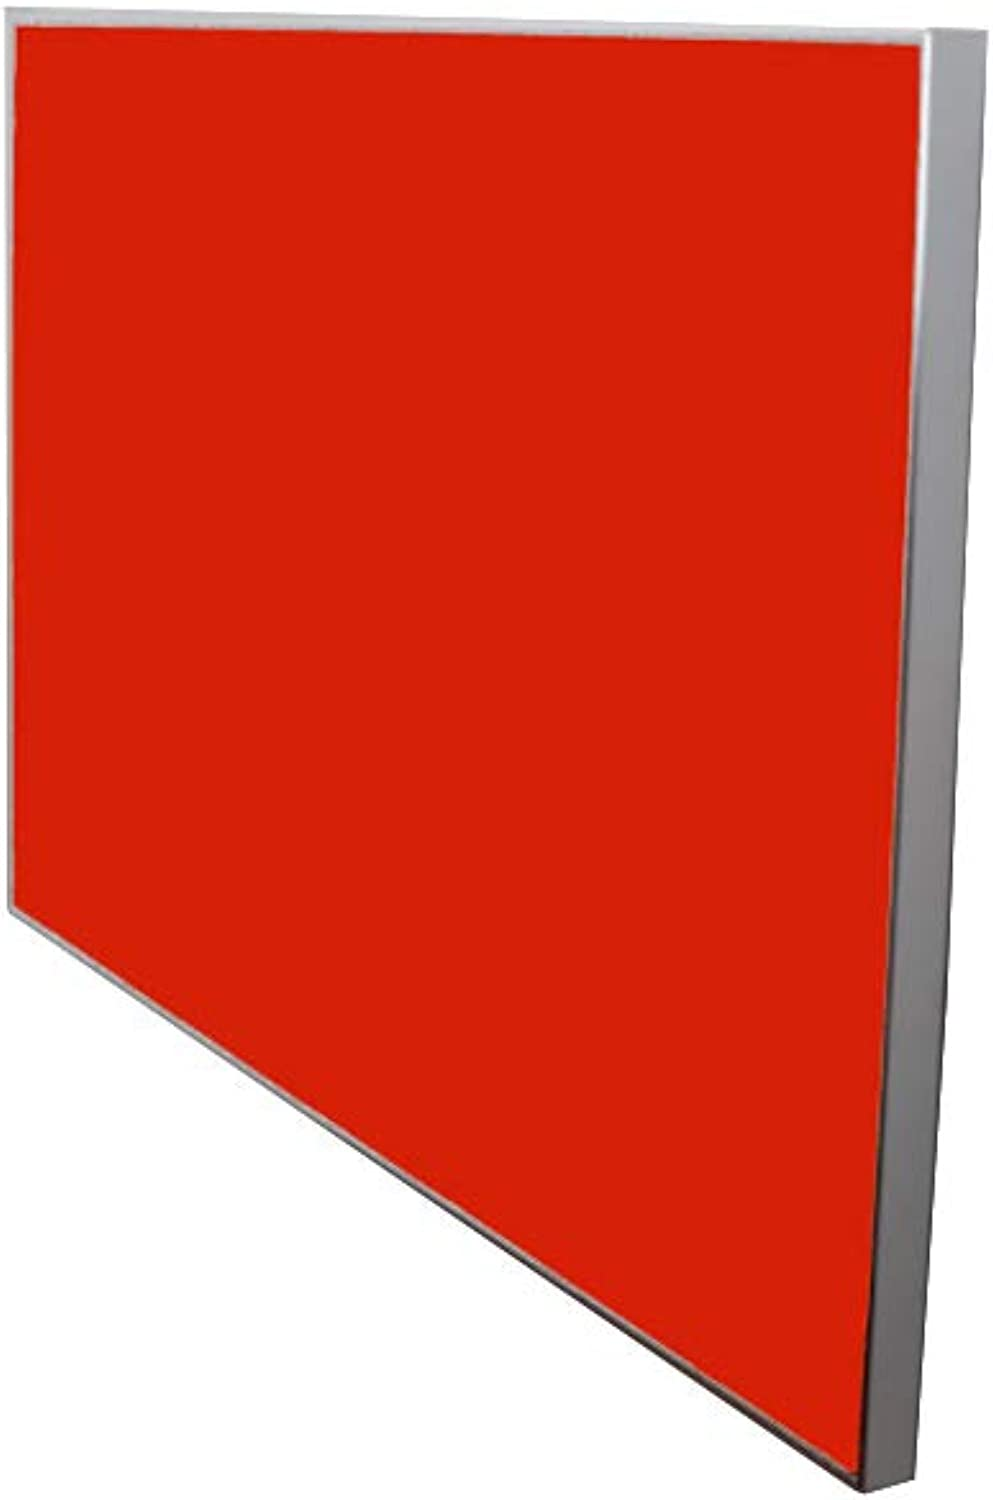 Folding Dining Table Wall Mounted Table, Red Wall Table Entryway Hallway, Side Table Load 90kg, 80×50×70cm